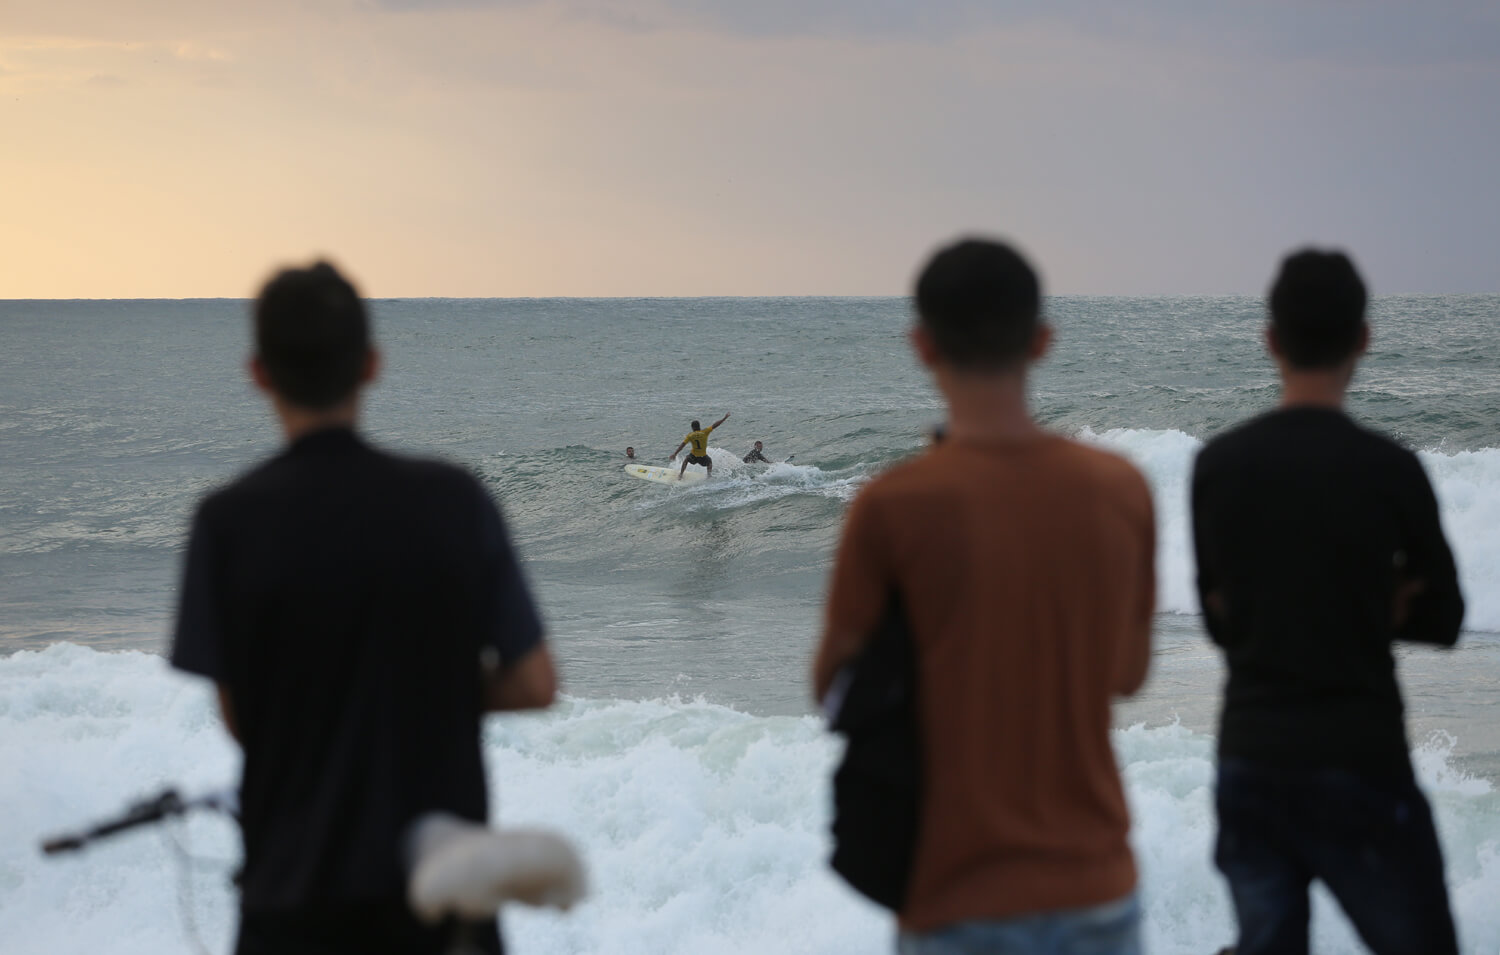 Onlookers watch the surfers. (Photo: Mohammed Asad)